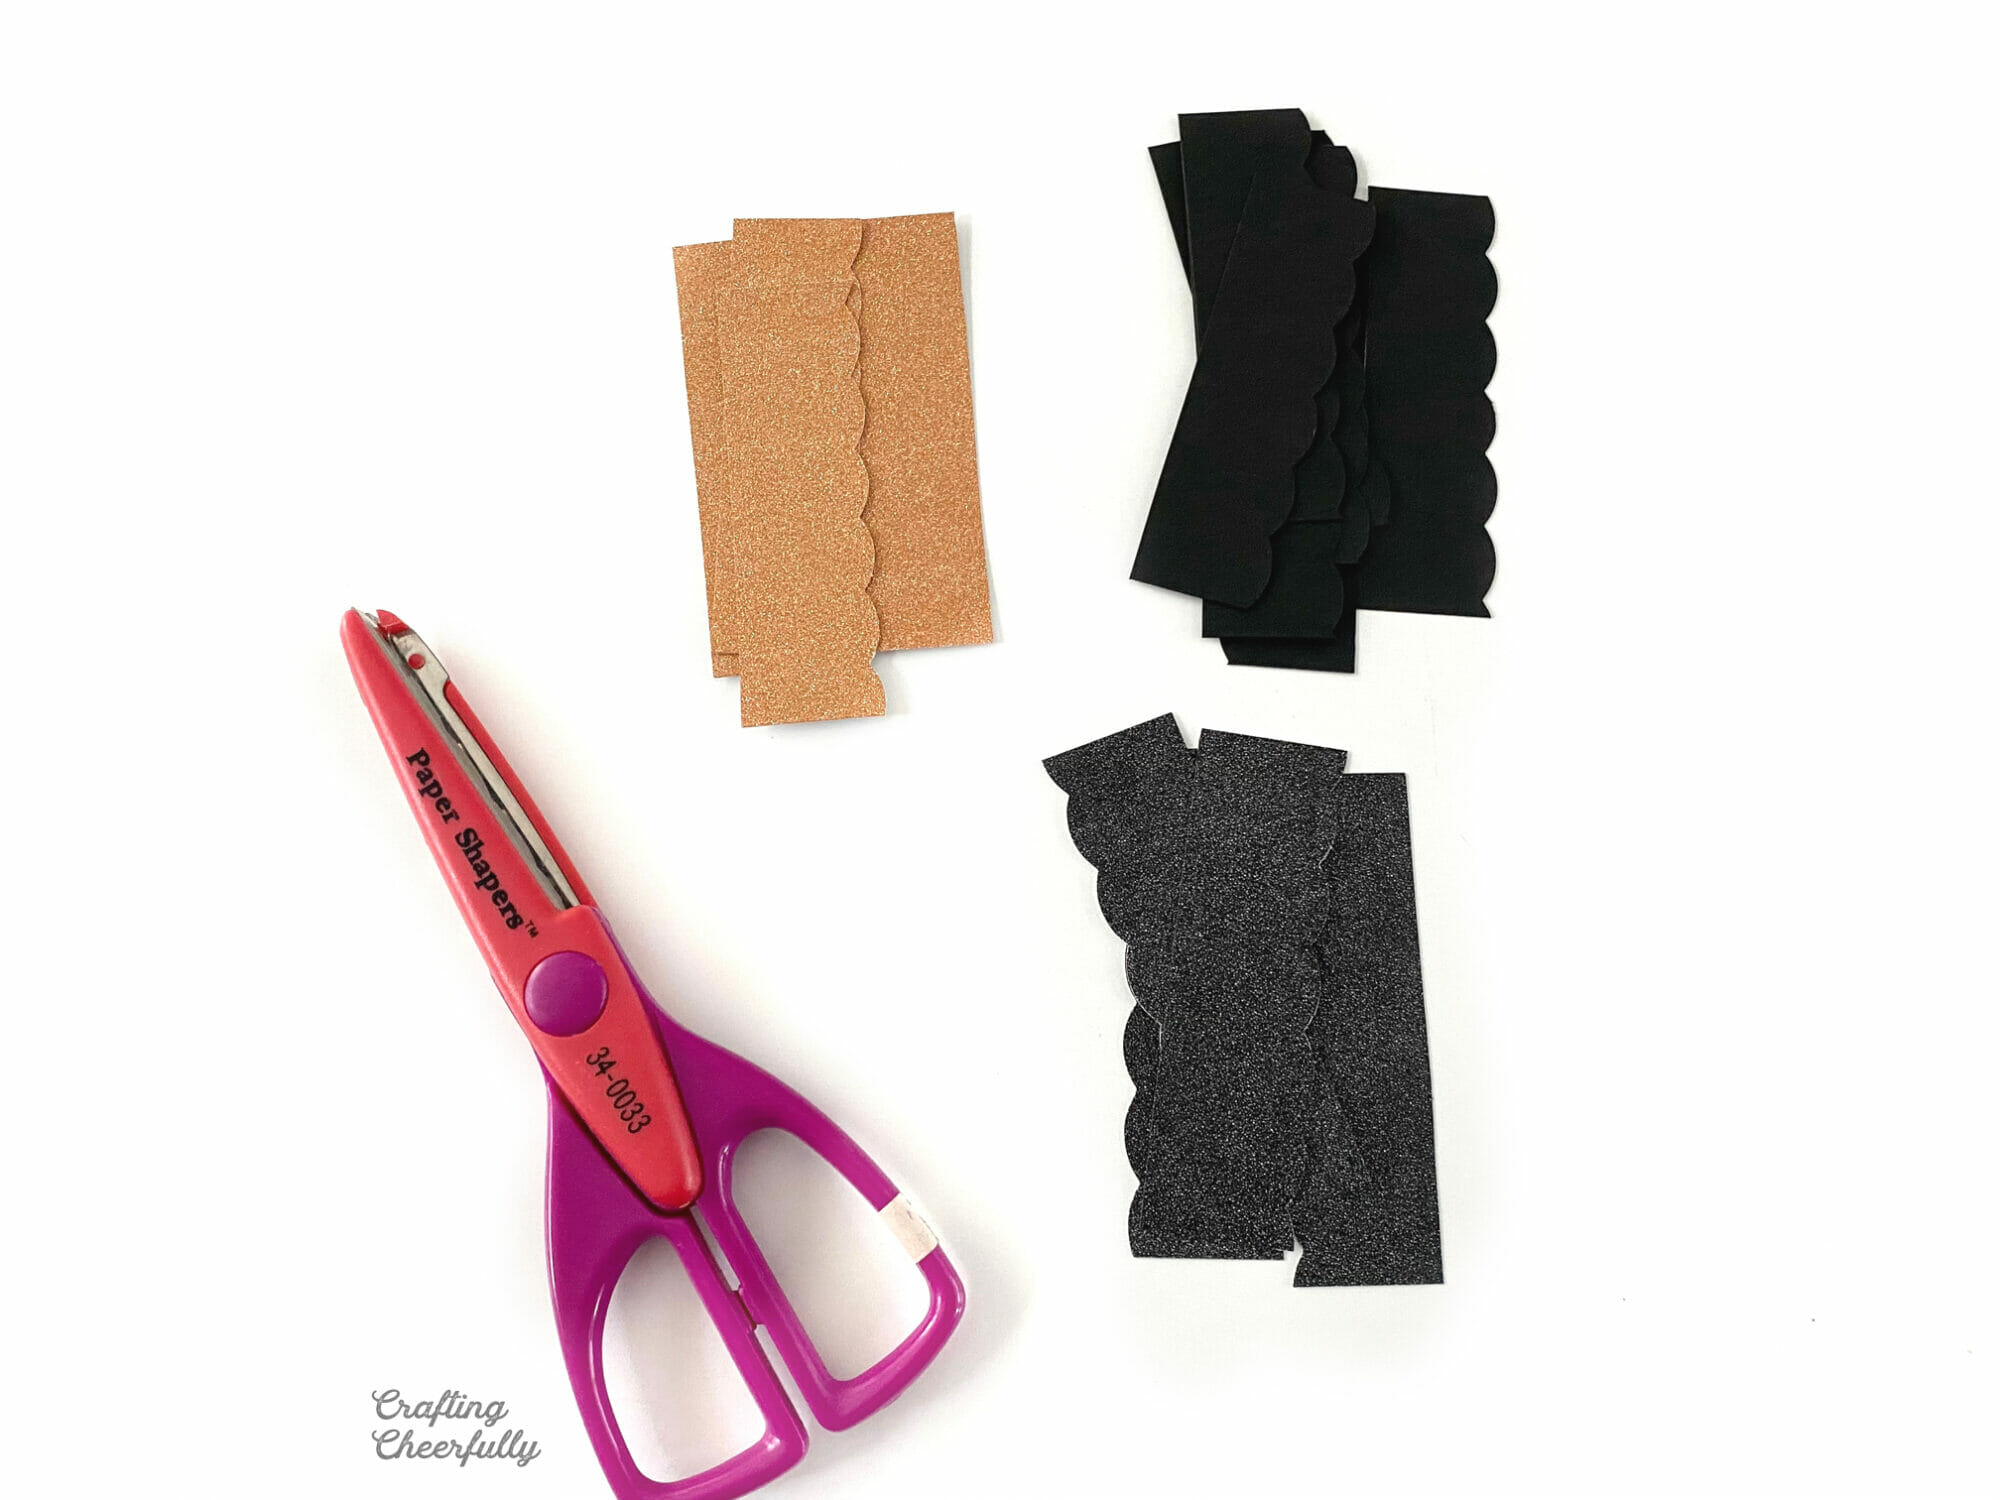 Scalloped pieces of paper in piles lay next to a decorative edge scissors.